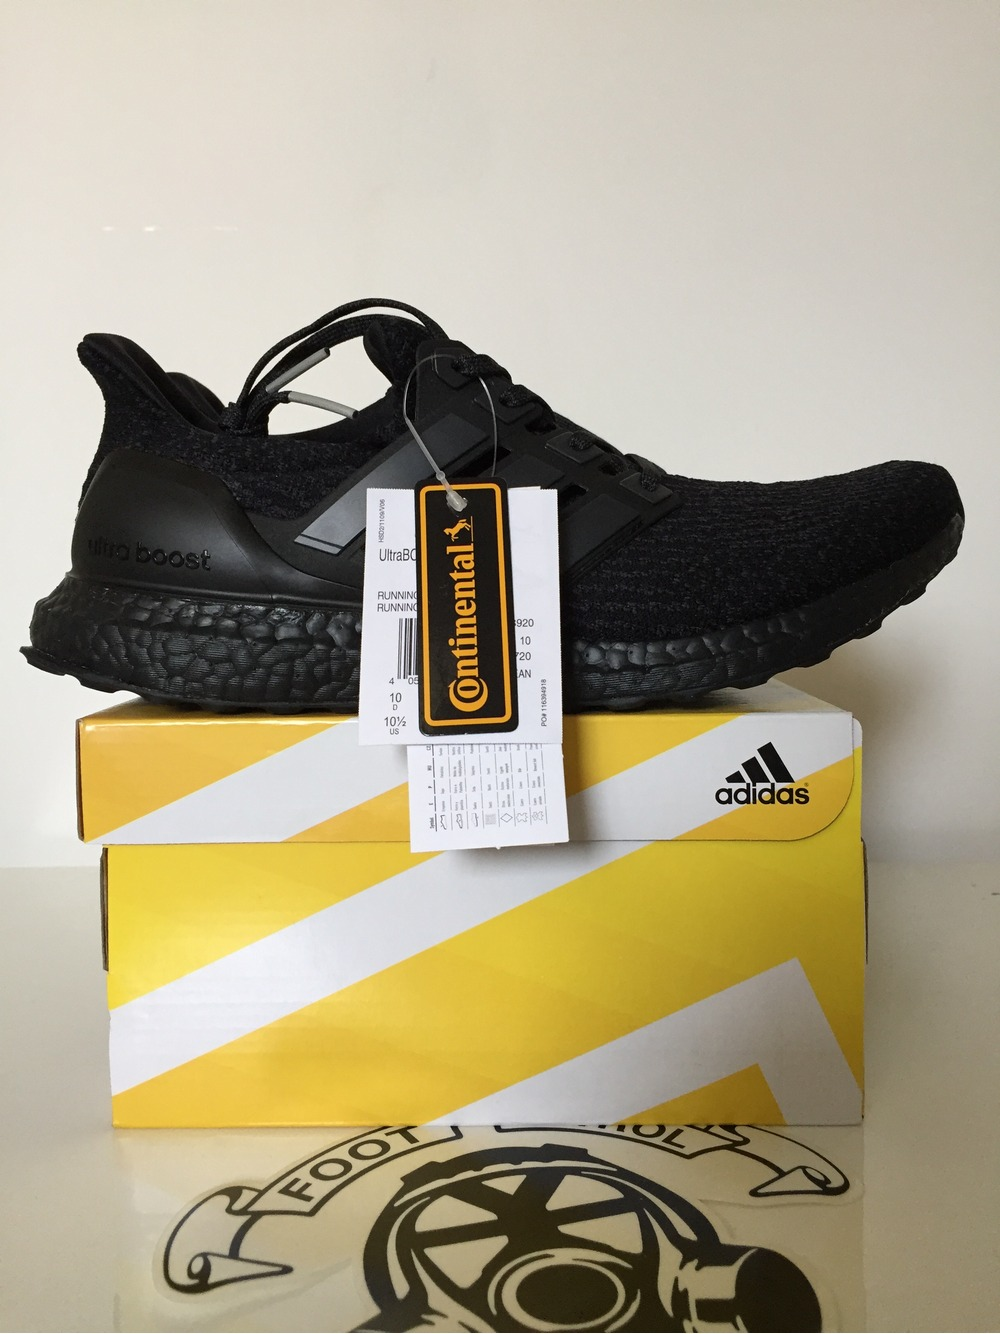 Adidas Ultra Boost 3.0 'Black' UNBOXING & ON FEET fashion shoes